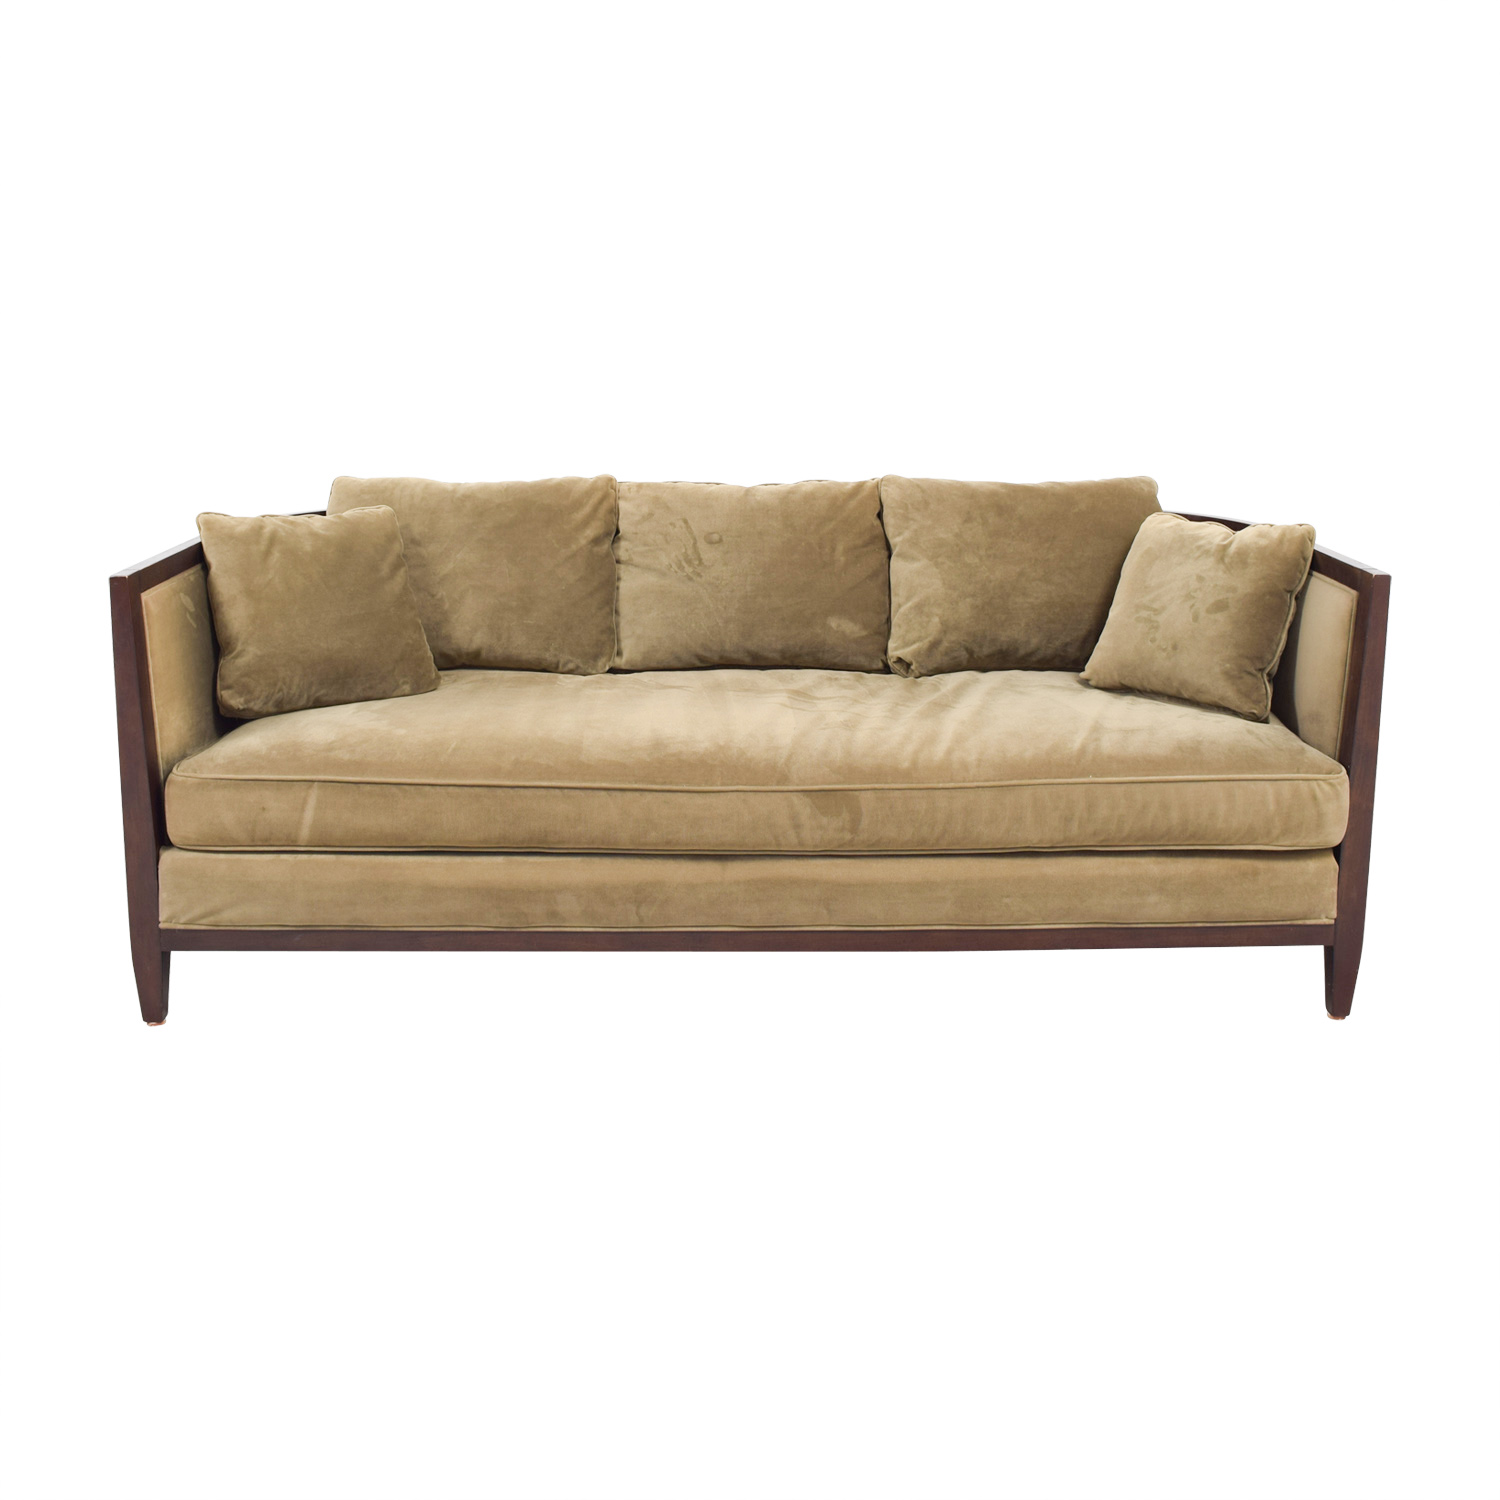 single cushion sofa pros and cons leather repair bloomingdales bed baci living room